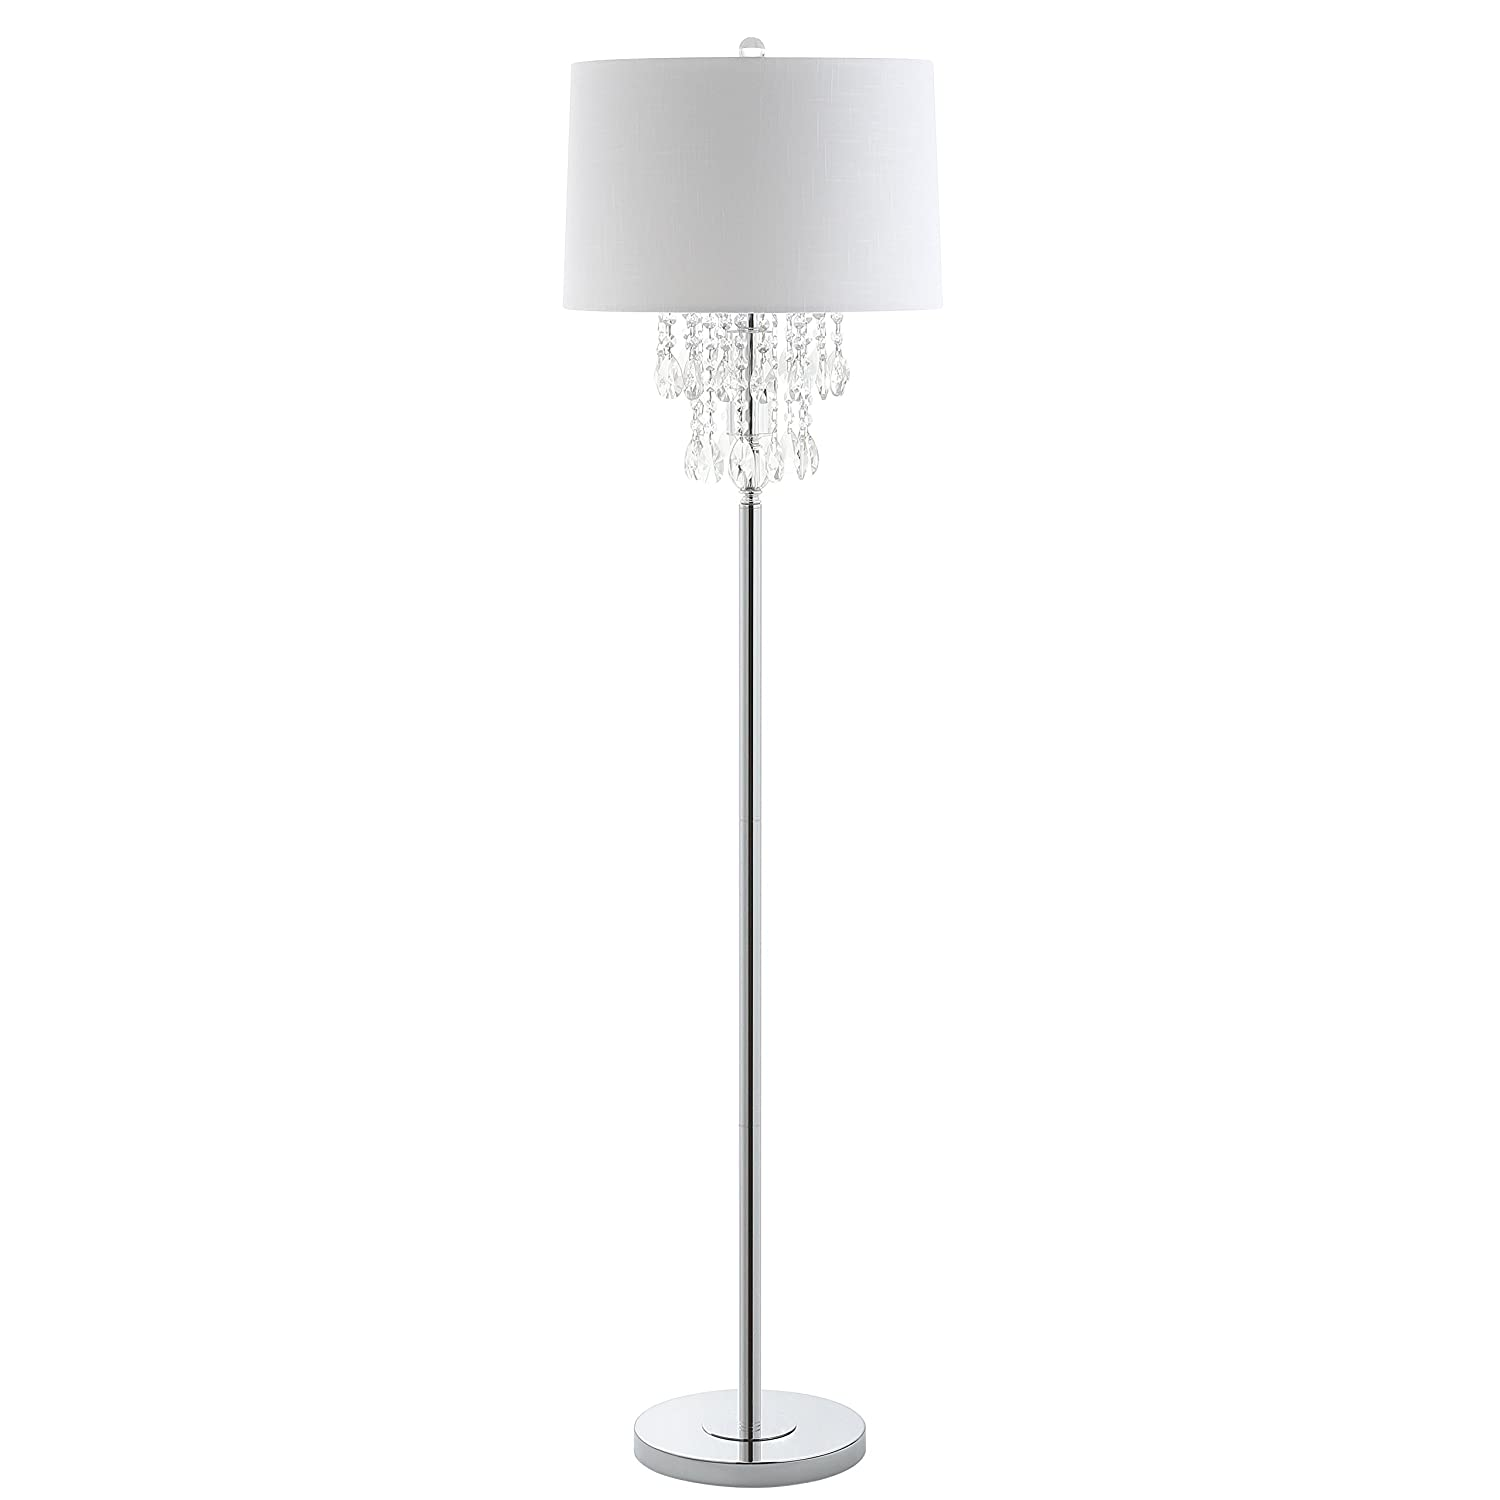 """JONATHAN Y JYL2034A Floor Lamp, 16.0"""" x 61.0"""" x 16.0"""", Clear/Chrome with White Shade"""